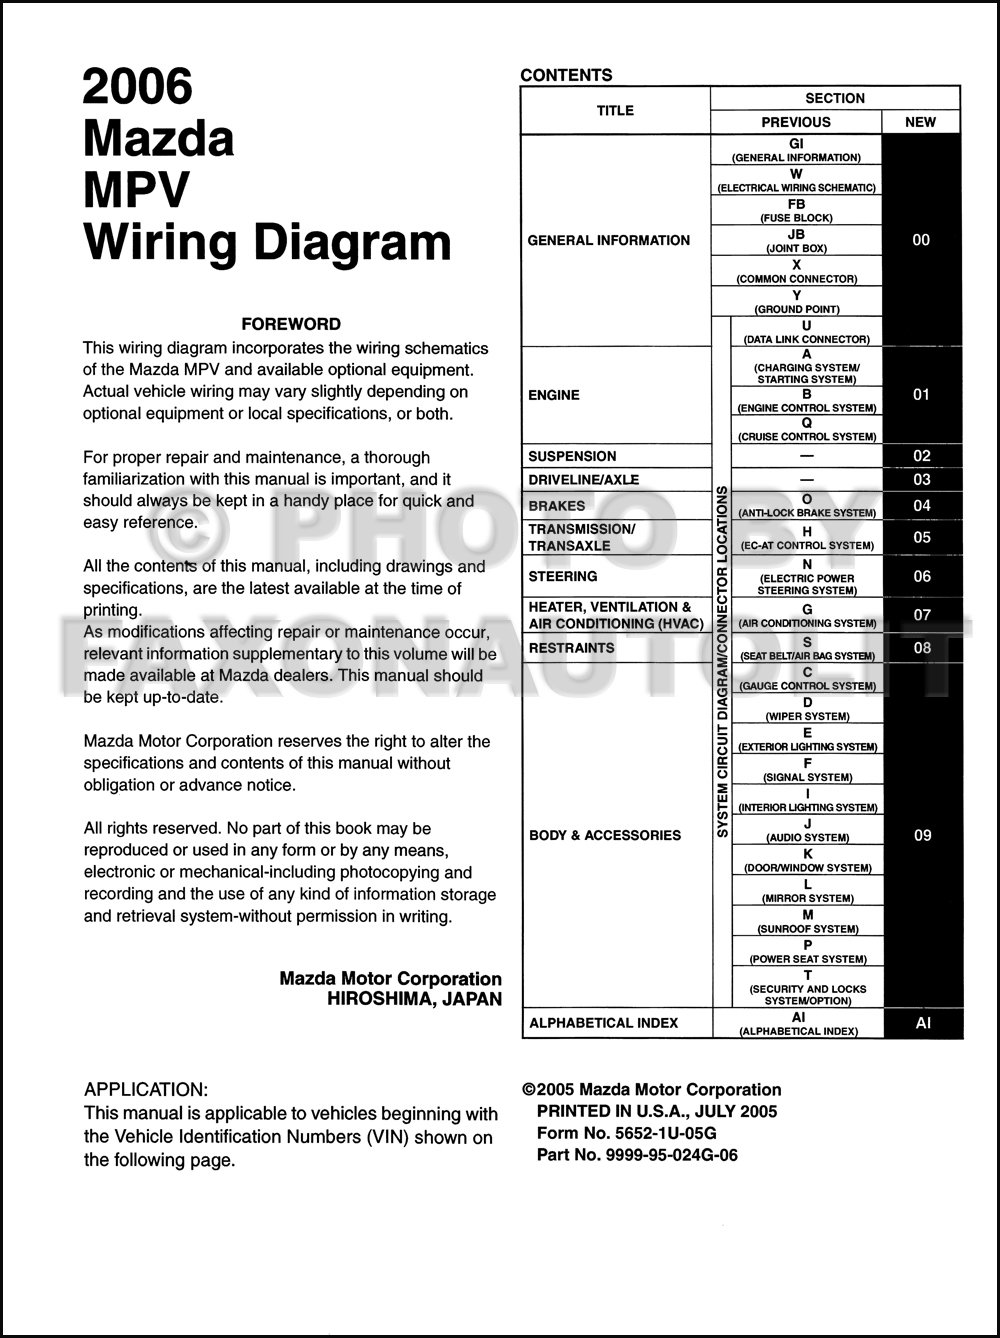 2006 Mazda Radio Wiring Diagram Starting Know About Wiring Diagram \u2022 6 Speaker  Wiring Diagram 2006 Mazda 3 Stereo Wiring Diagram